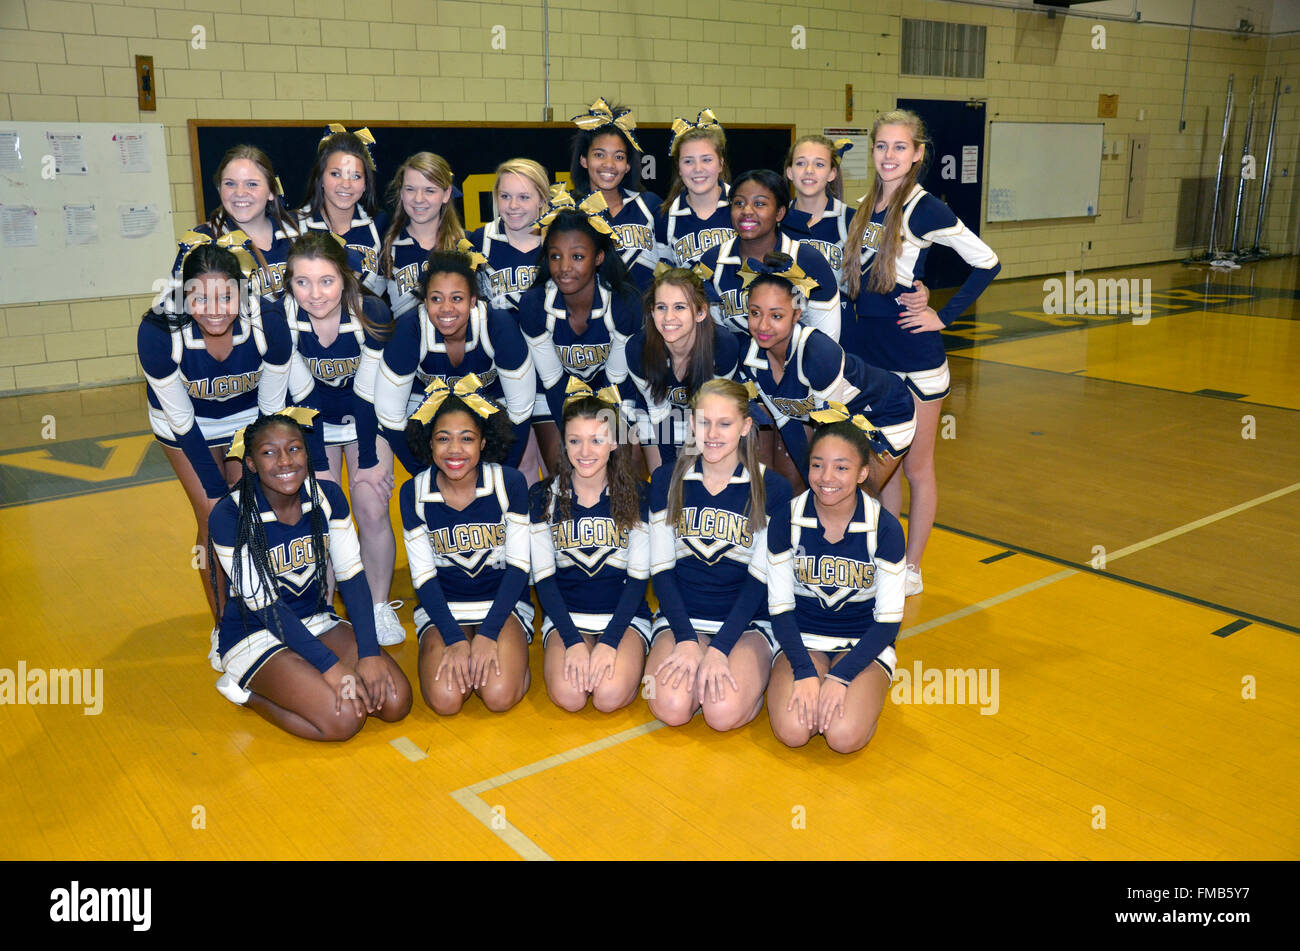 team picture of cheerleaders - Stock Image